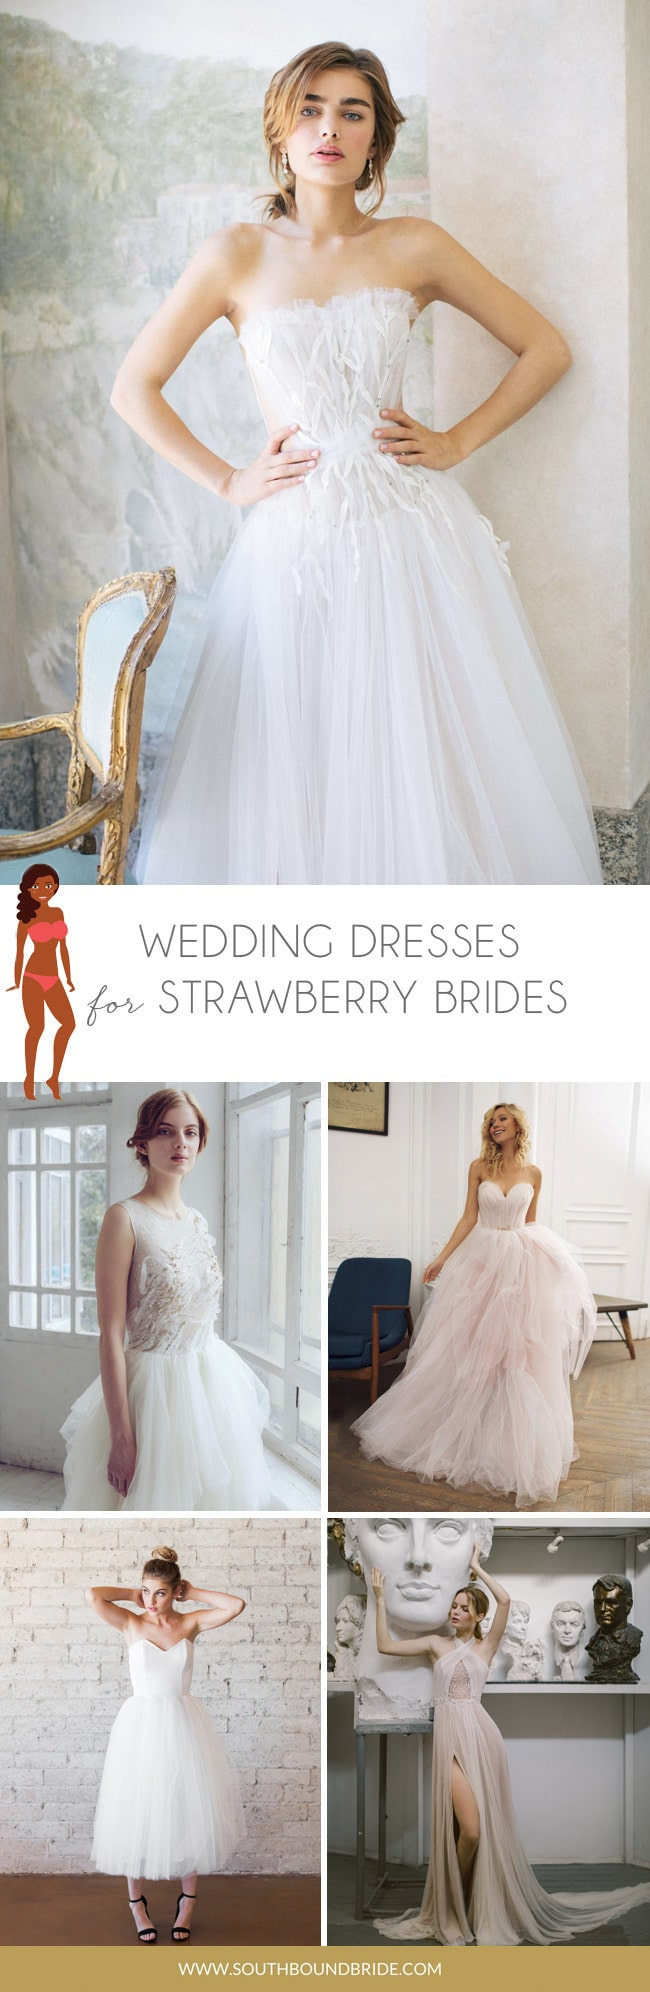 Wedding Dresses for Strawberry or Inverted Triangle Shape Brides